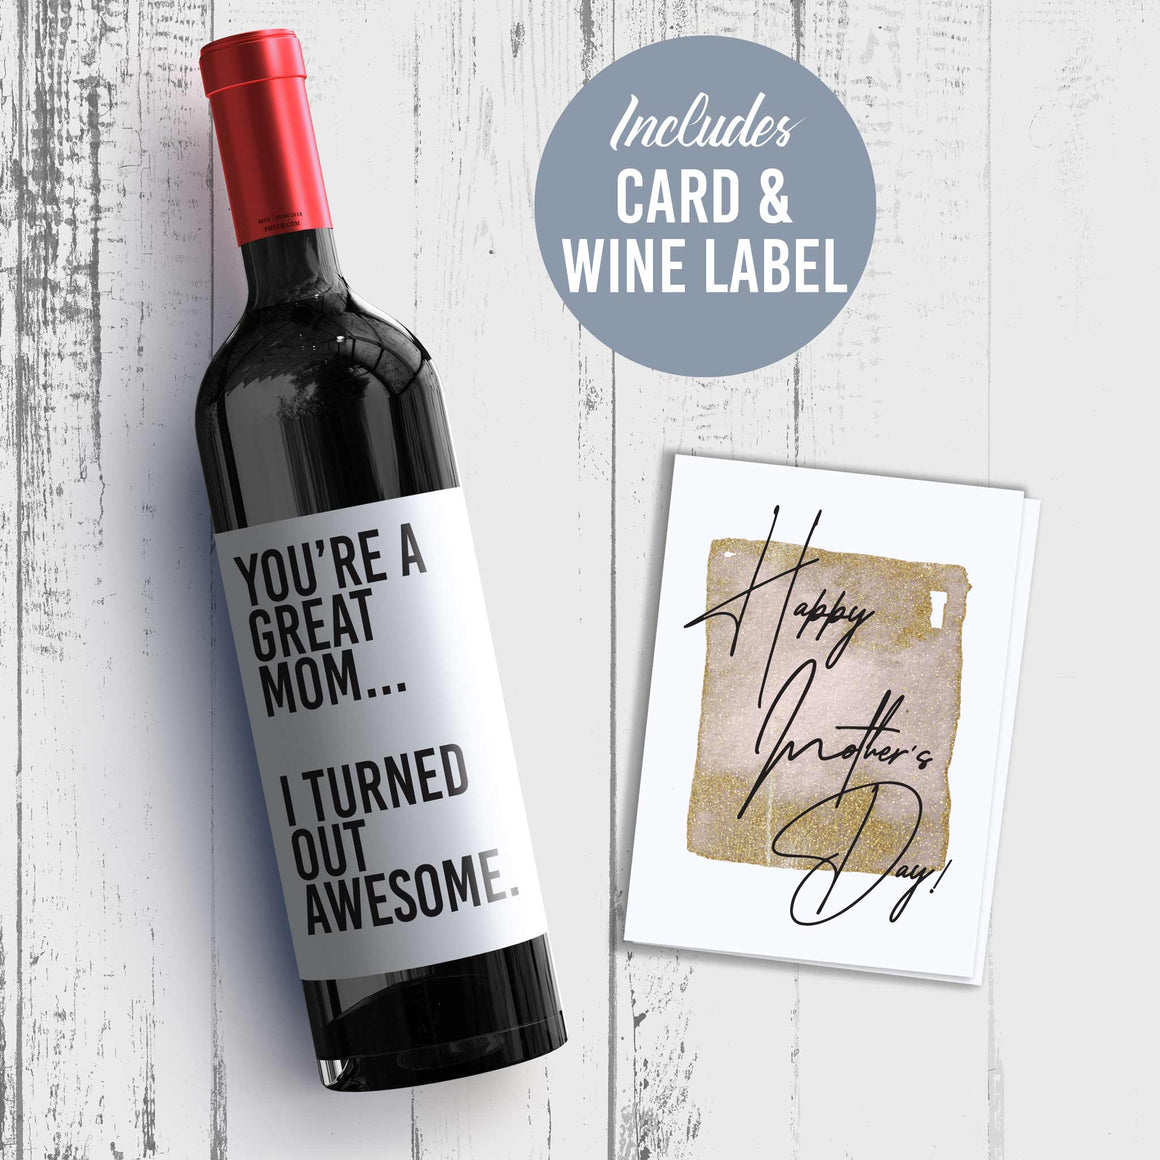 I Turned Out Awesome Mother's Day Wine Label + Card